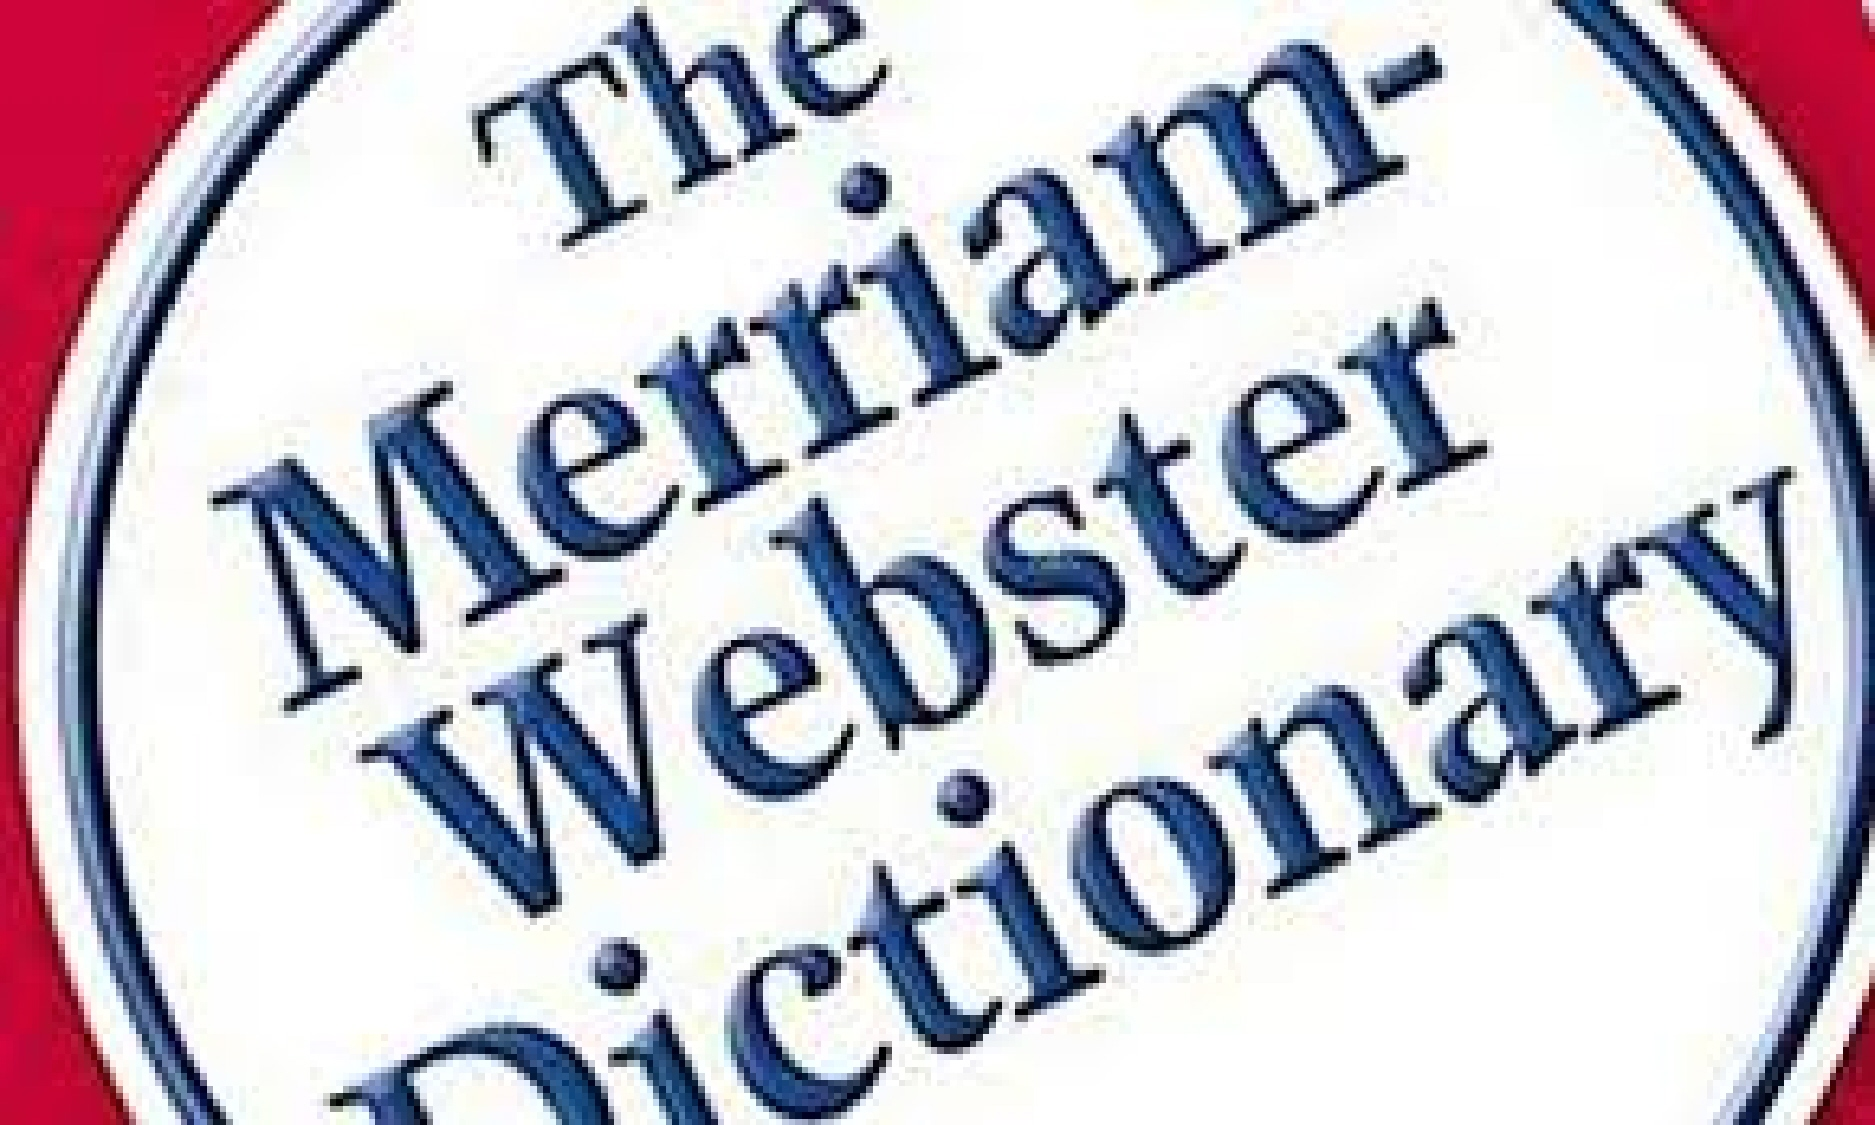 Consolidating democracy definition webster